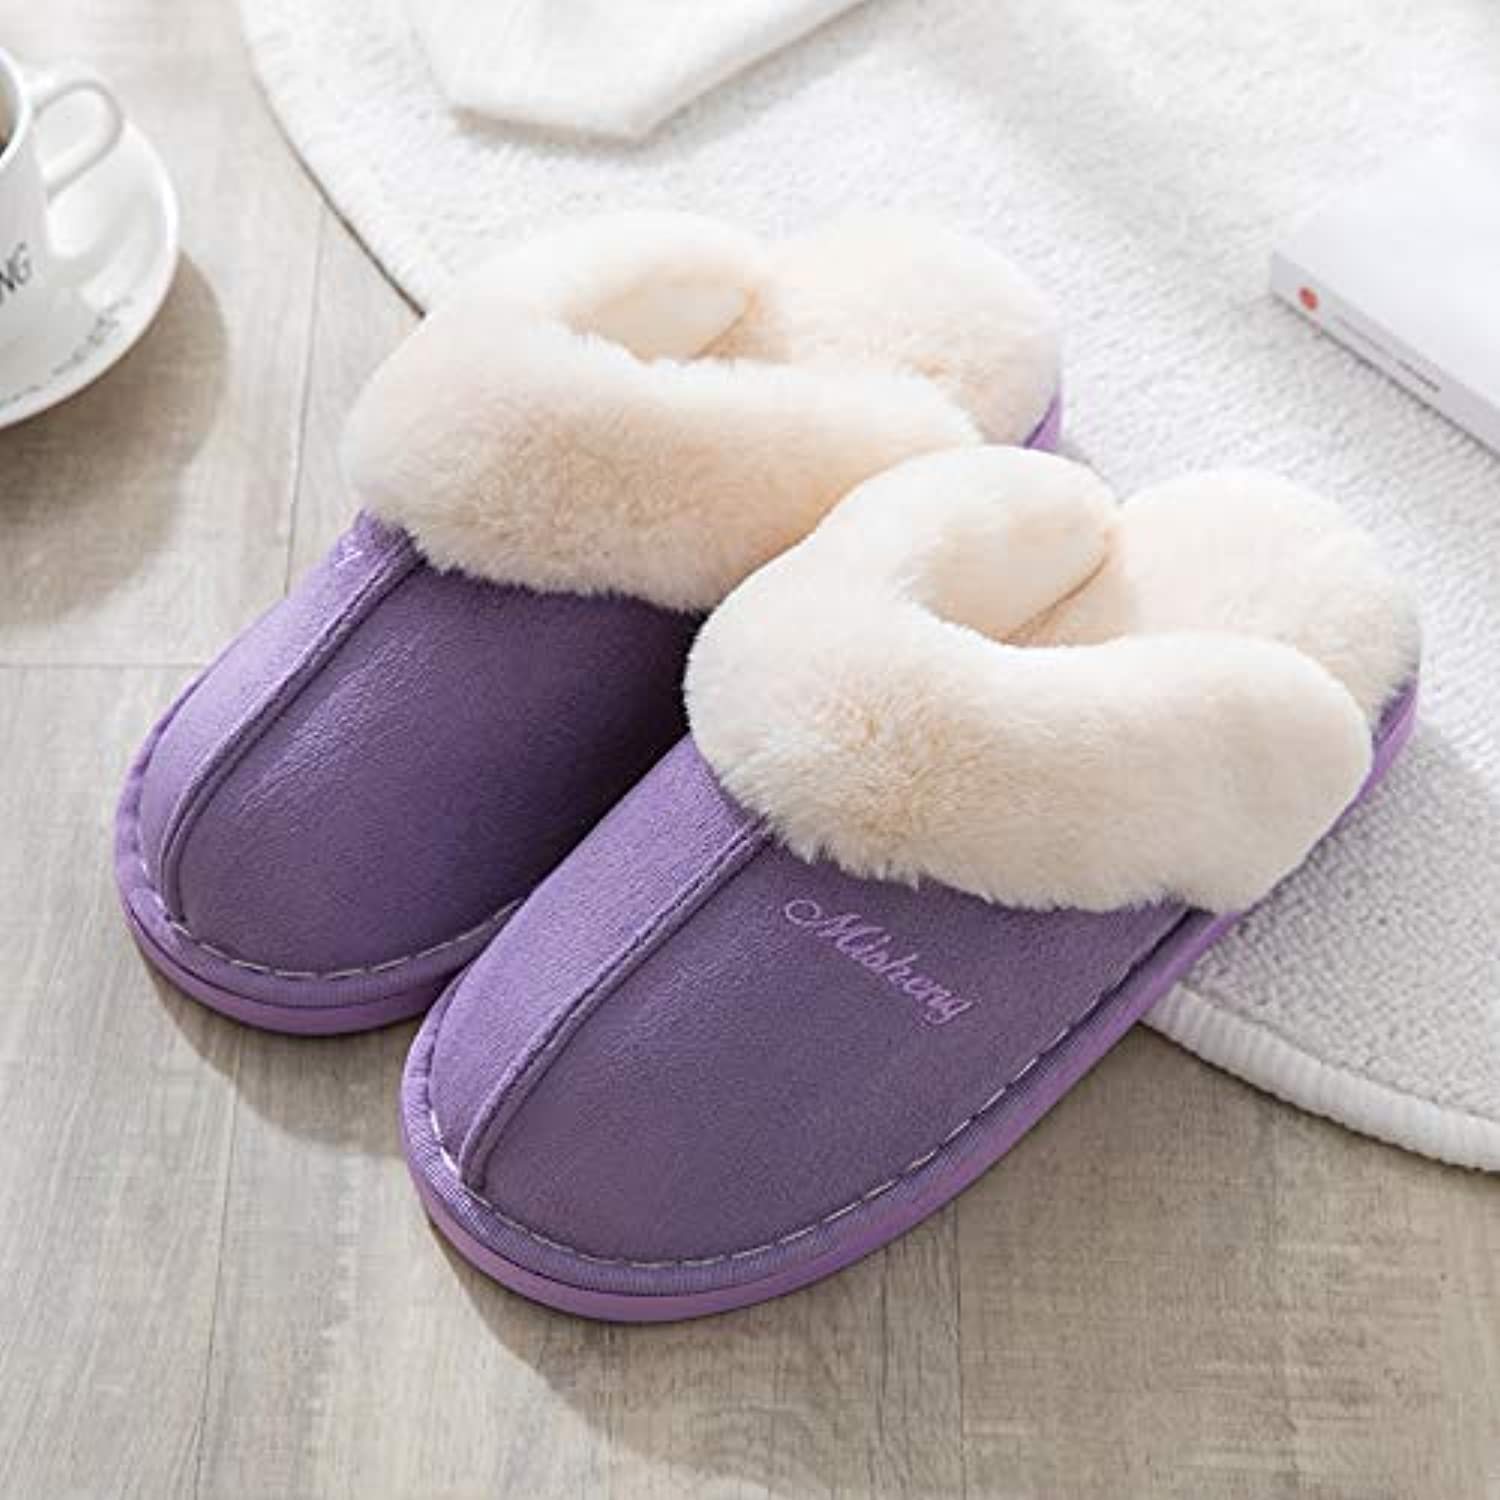 IANXI Home Autumn and Winter Waterproof Quilted Home Non-Slip Slippers Men and Women Indoor and Outdoor Warm Cotton Slippers Thick Slippers (color   Purple, Size   2)